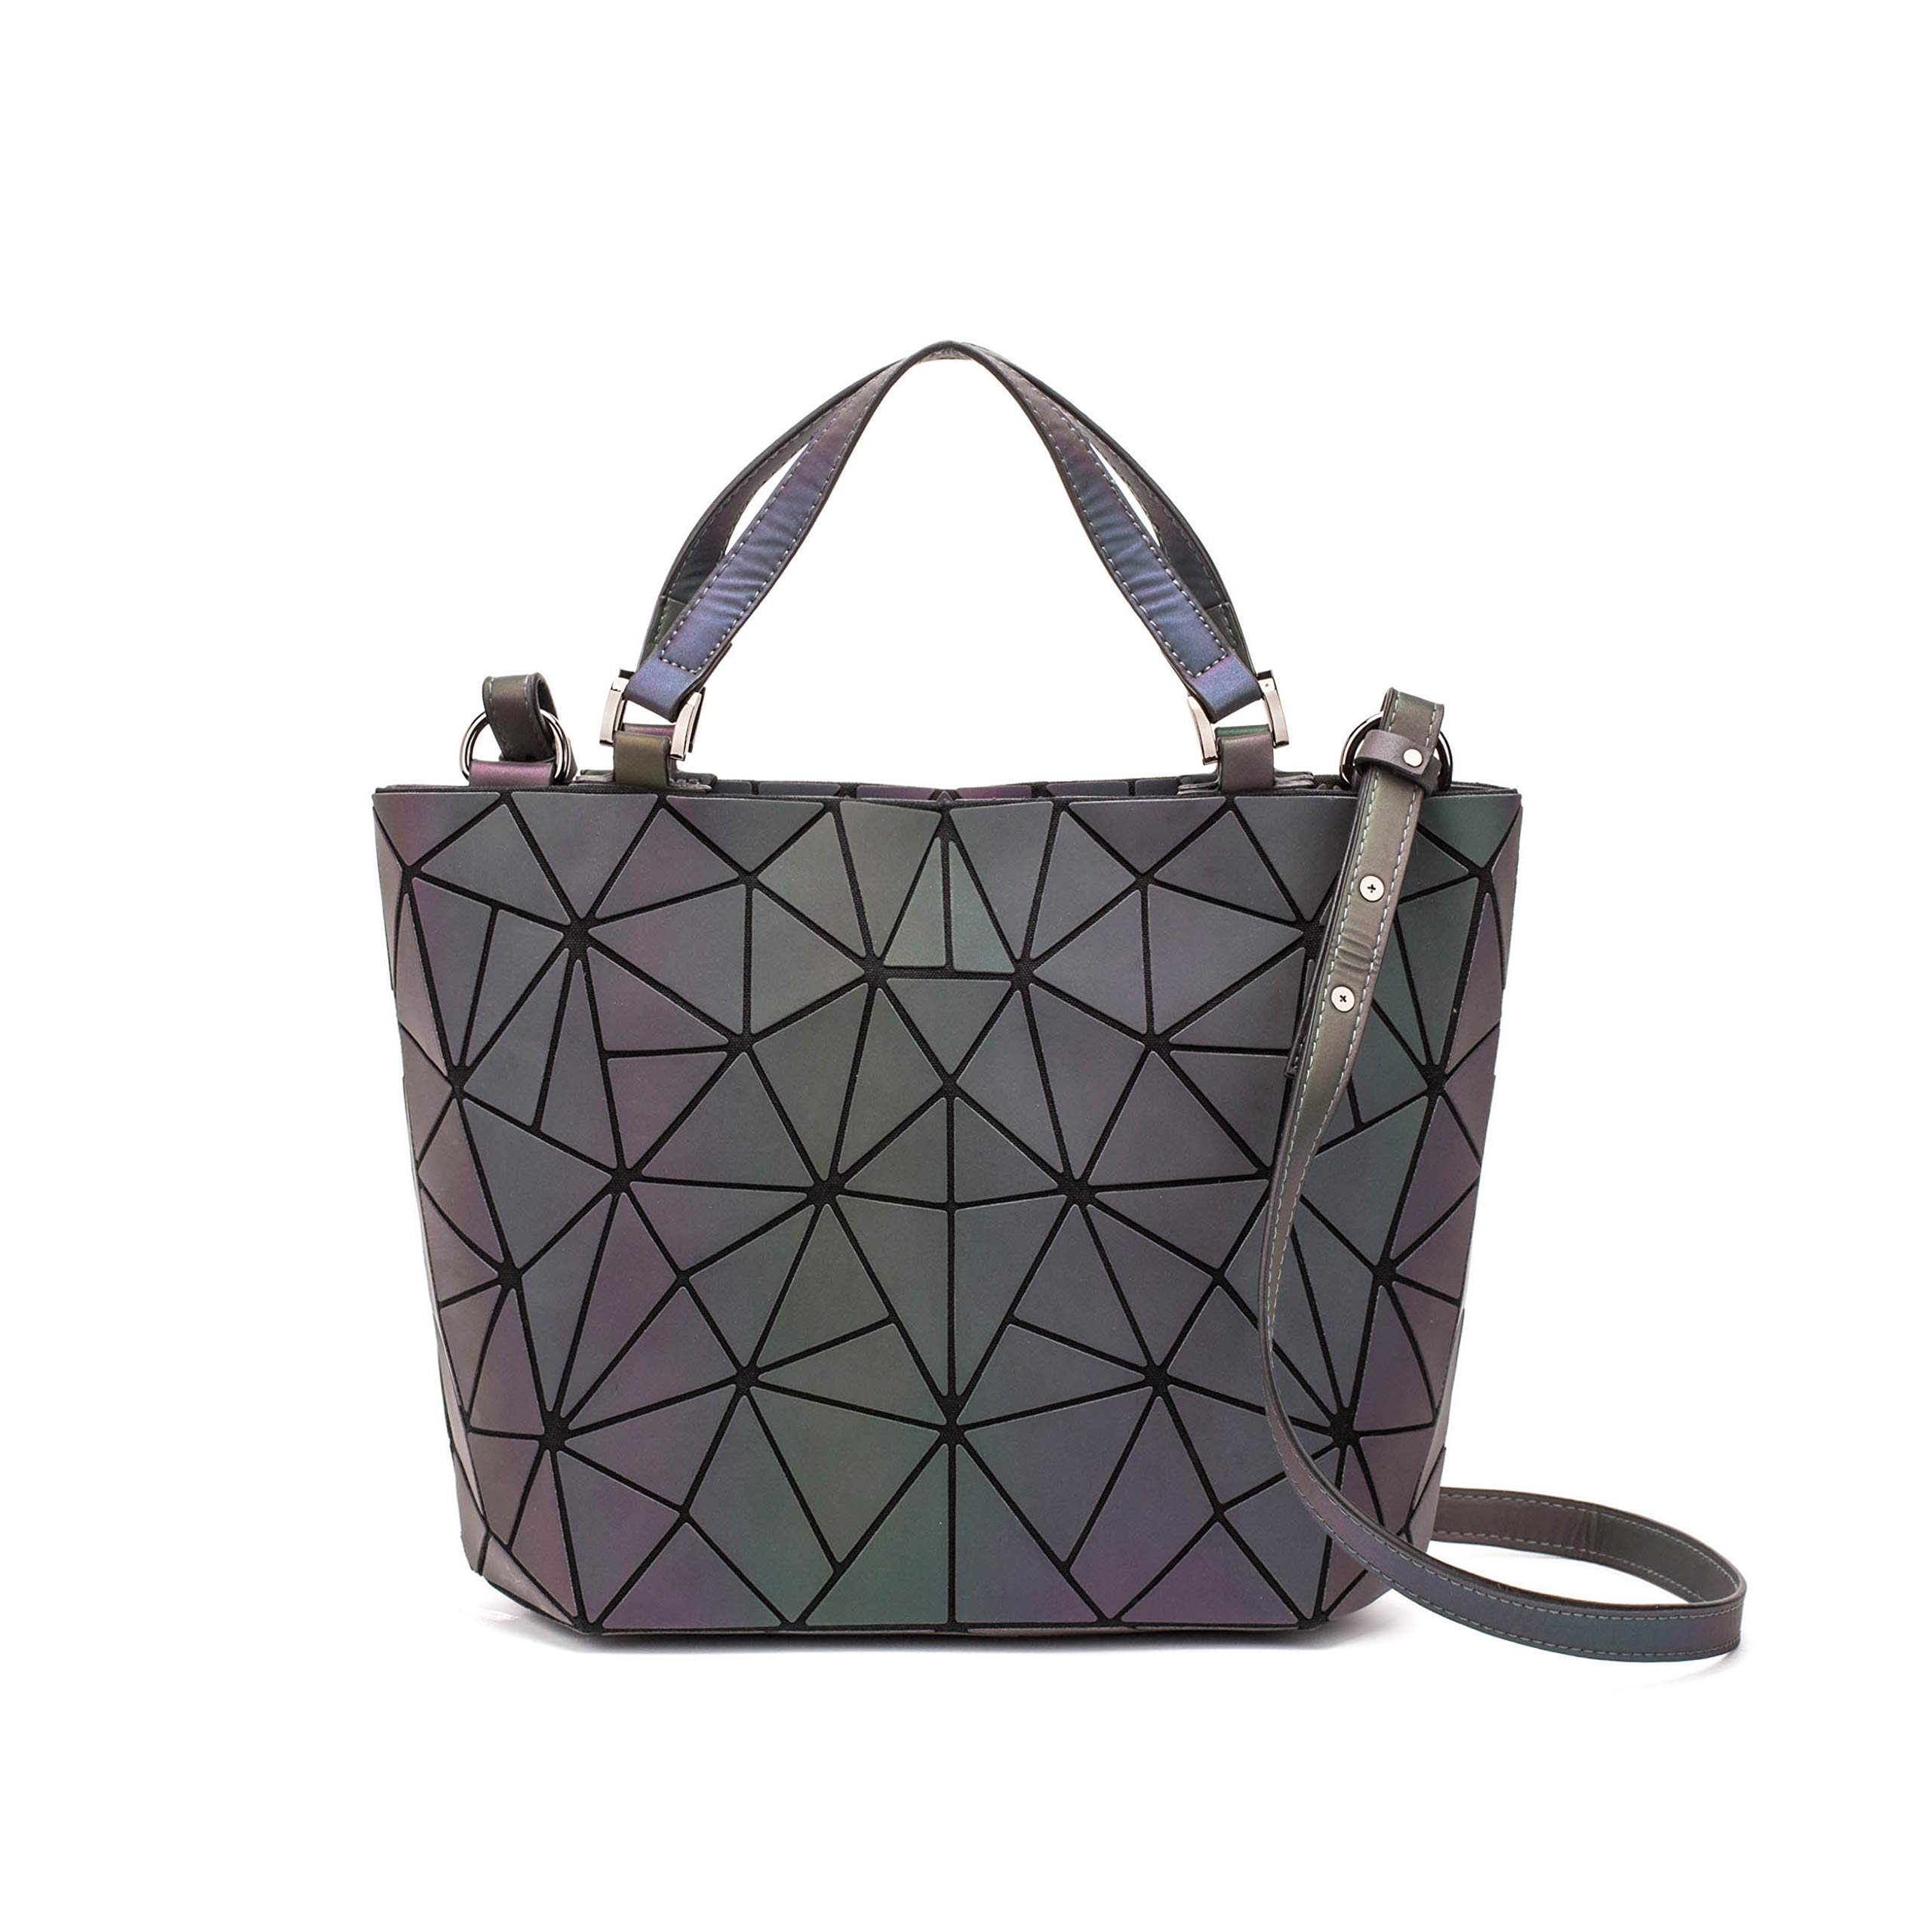 null - Geometric Backpack Fashion Backpacks Shard Lattice Luminous Bag Holographic Reflective Travel Rucksack NO.4